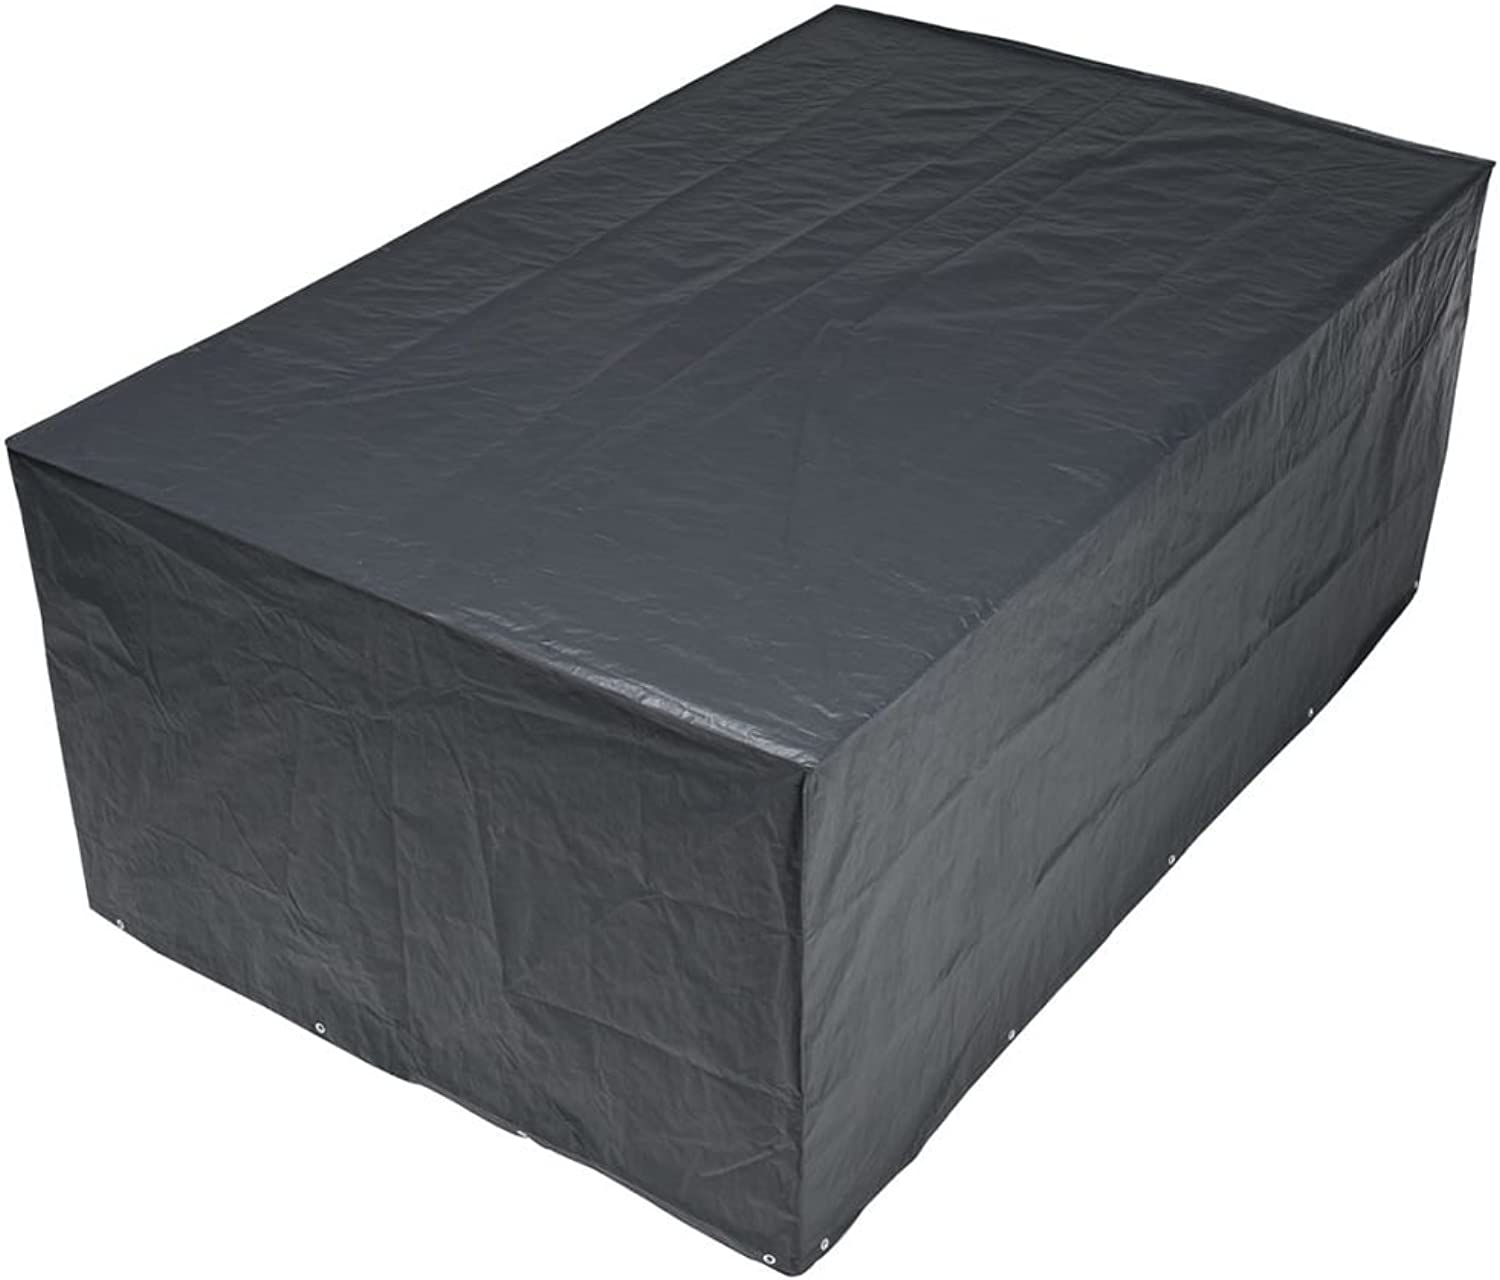 Nature Garden Furniture Cover 90 x 225 143 cm PE Dark Grey 6030602